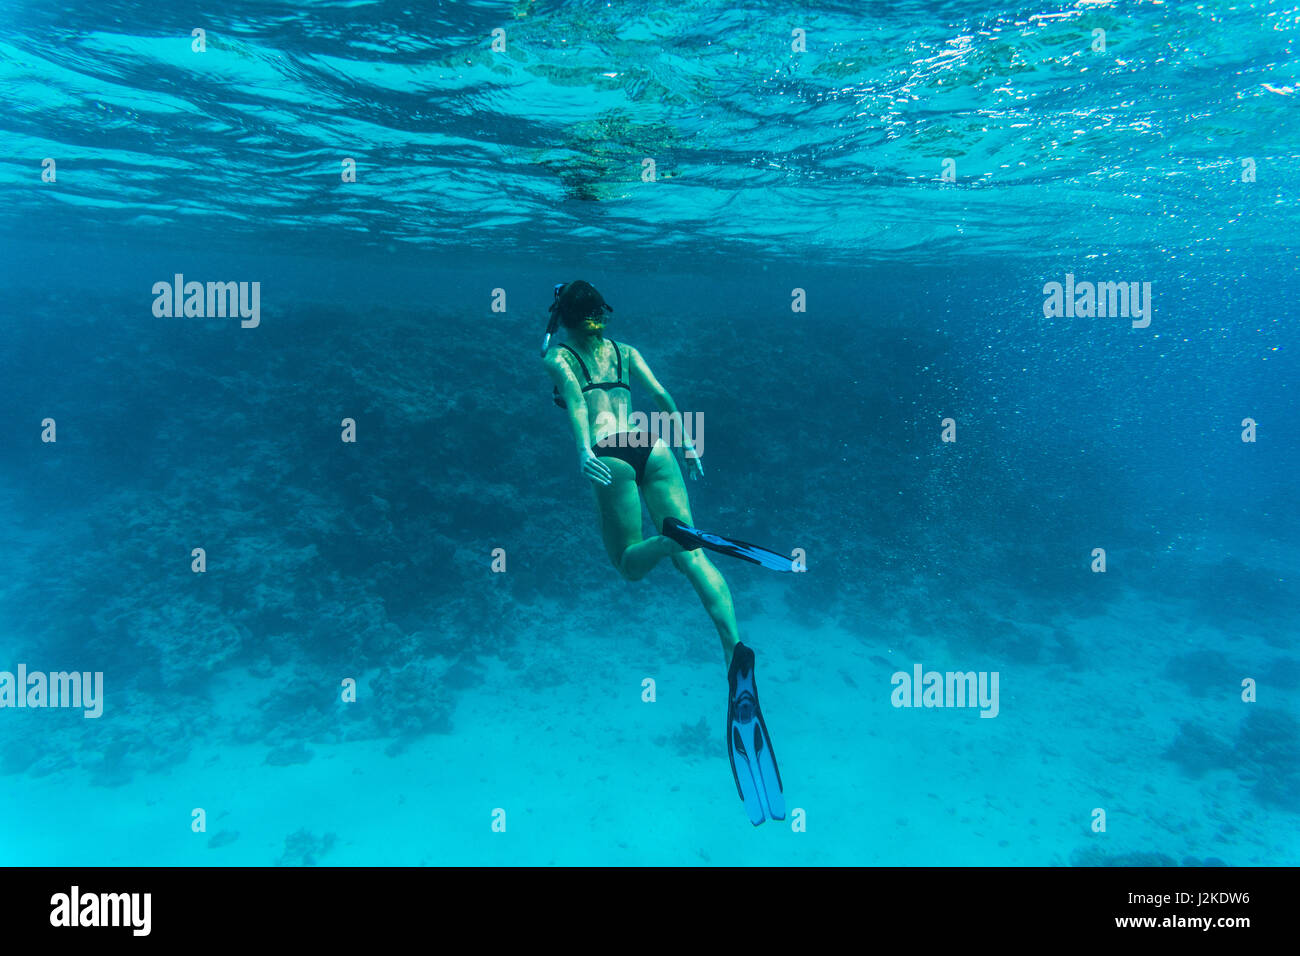 Underwater photo of woman snorkeling and diving in a clear tropical water at coral reef Stock Photo